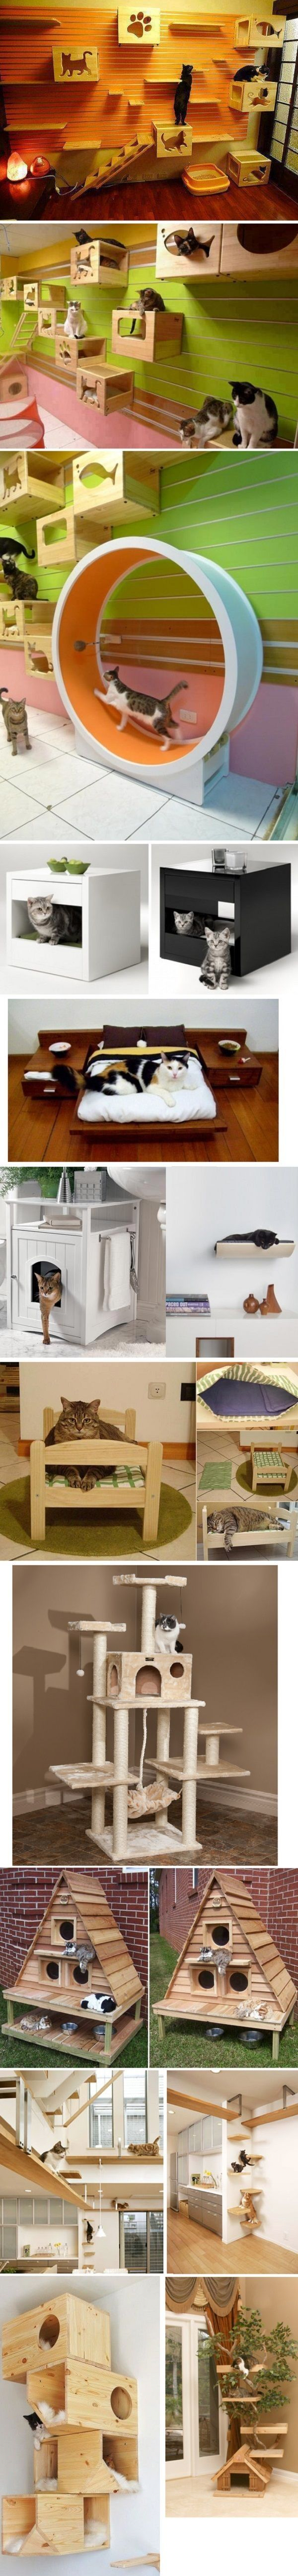 15 Awesome Cat Playhouses | WoodworkerZ.com